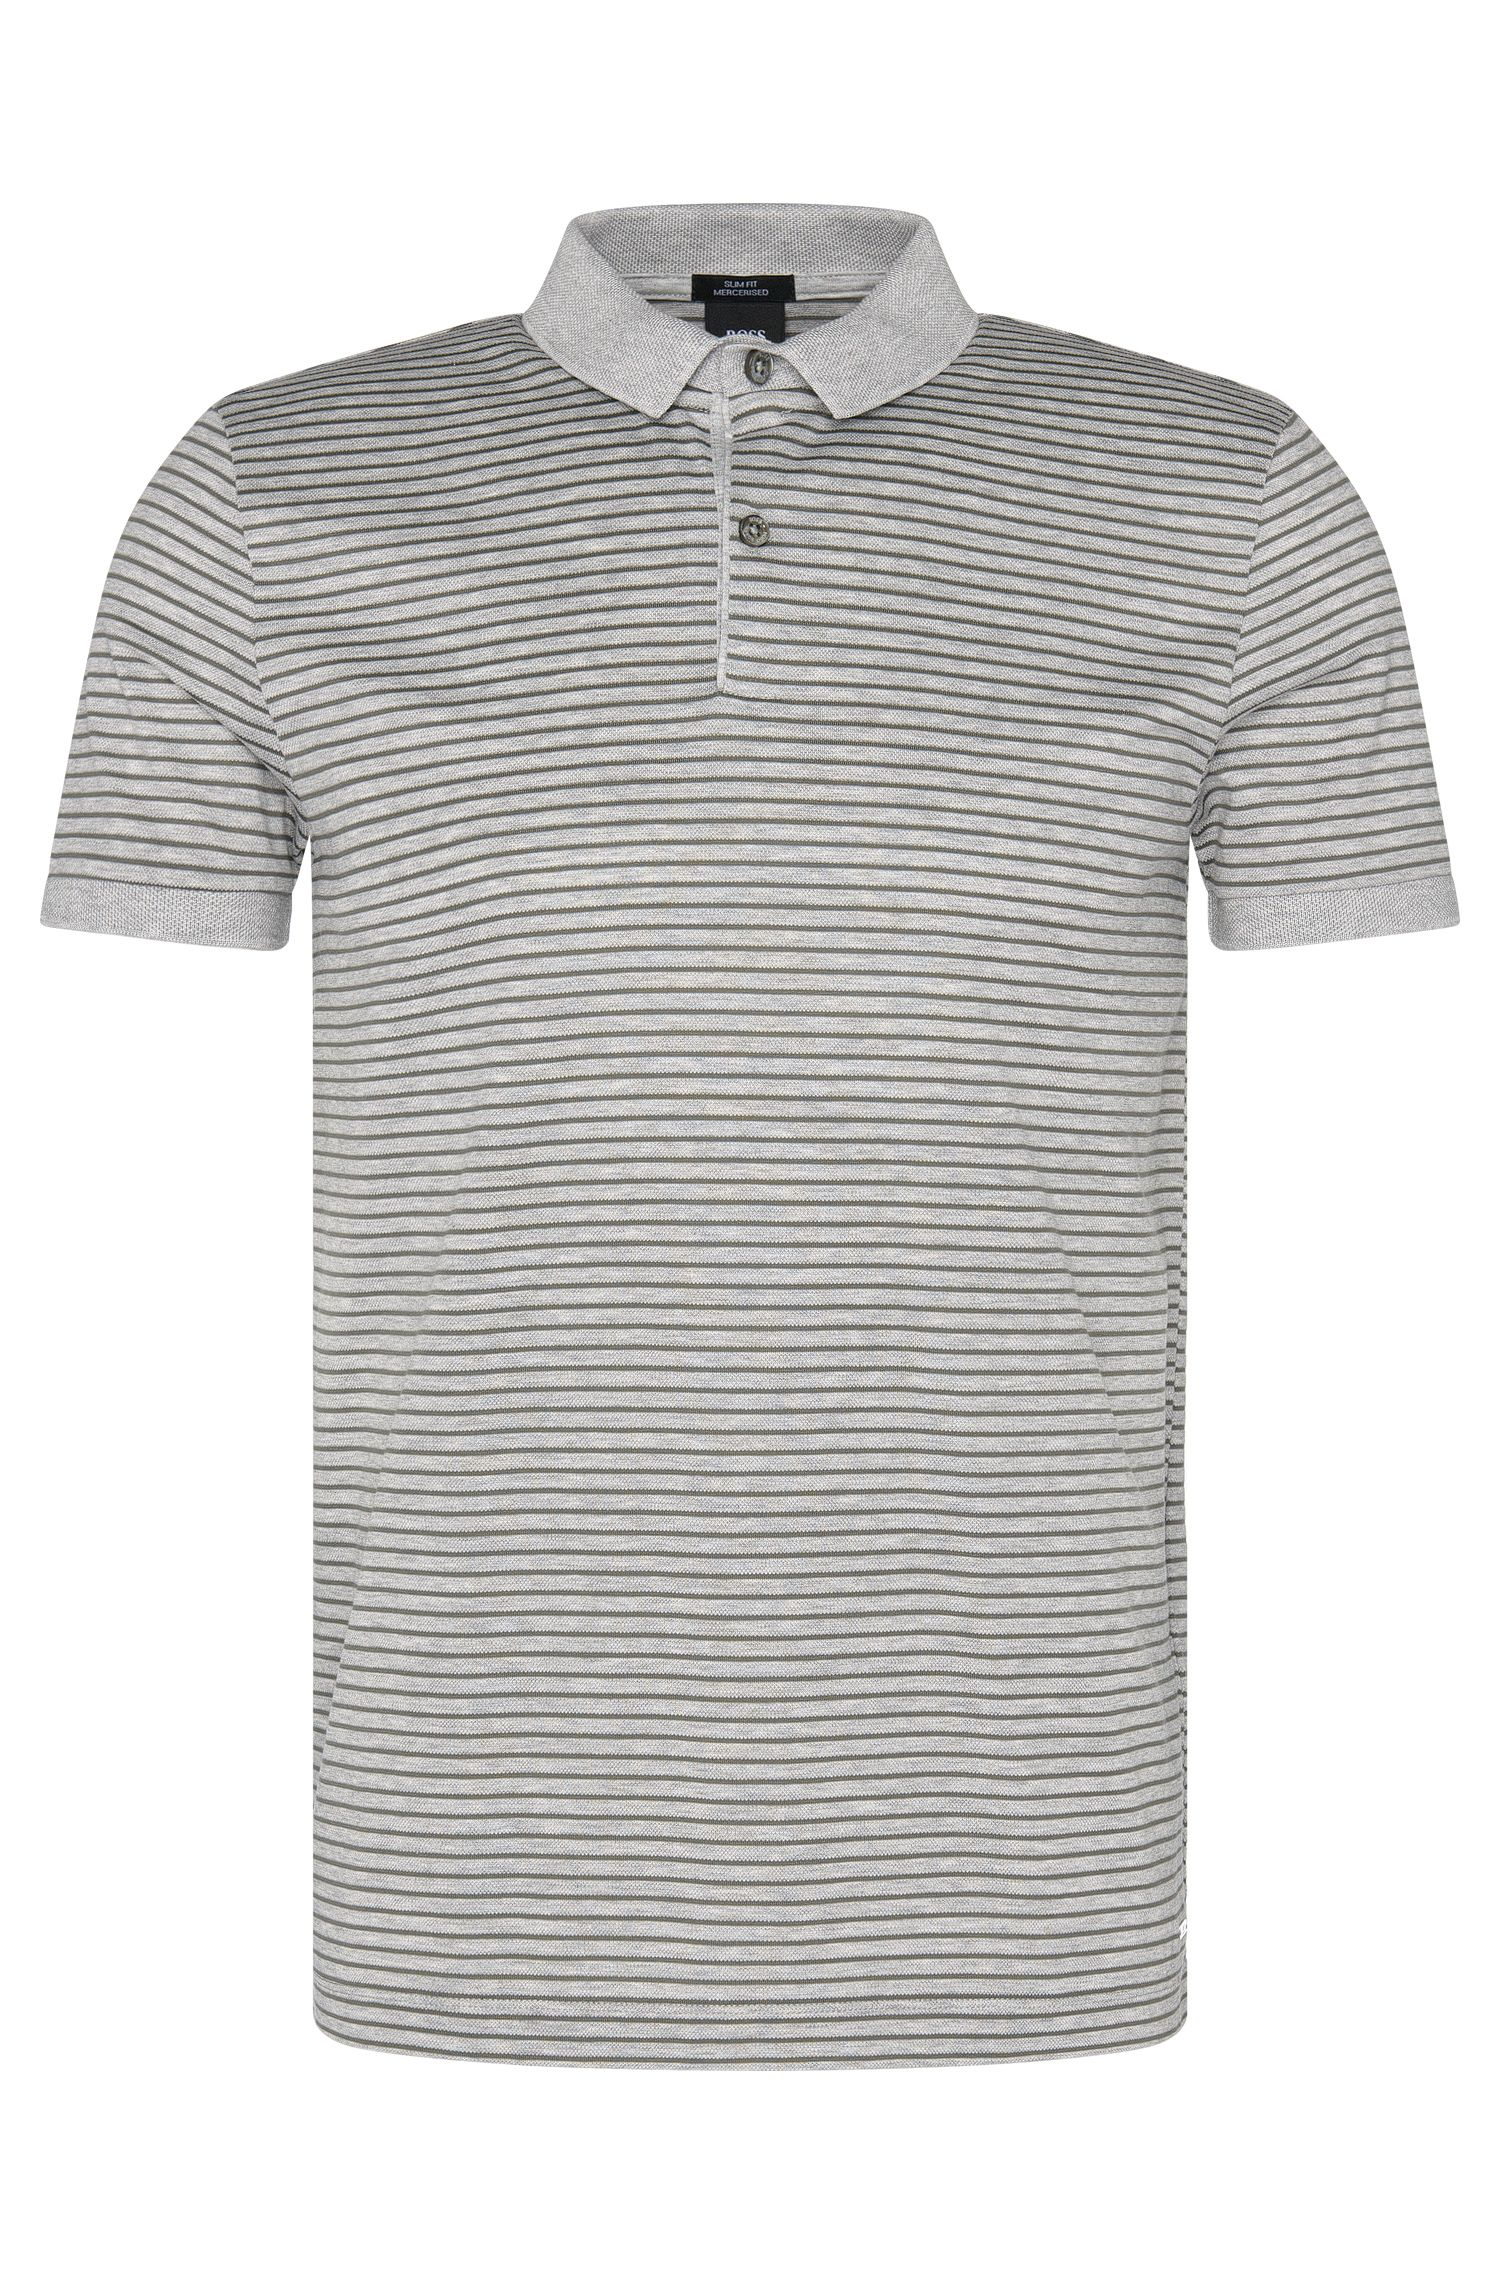 Slim-Fit Poloshirt aus Baumwolle im Two-Tone-Design: 'Penrose 11'